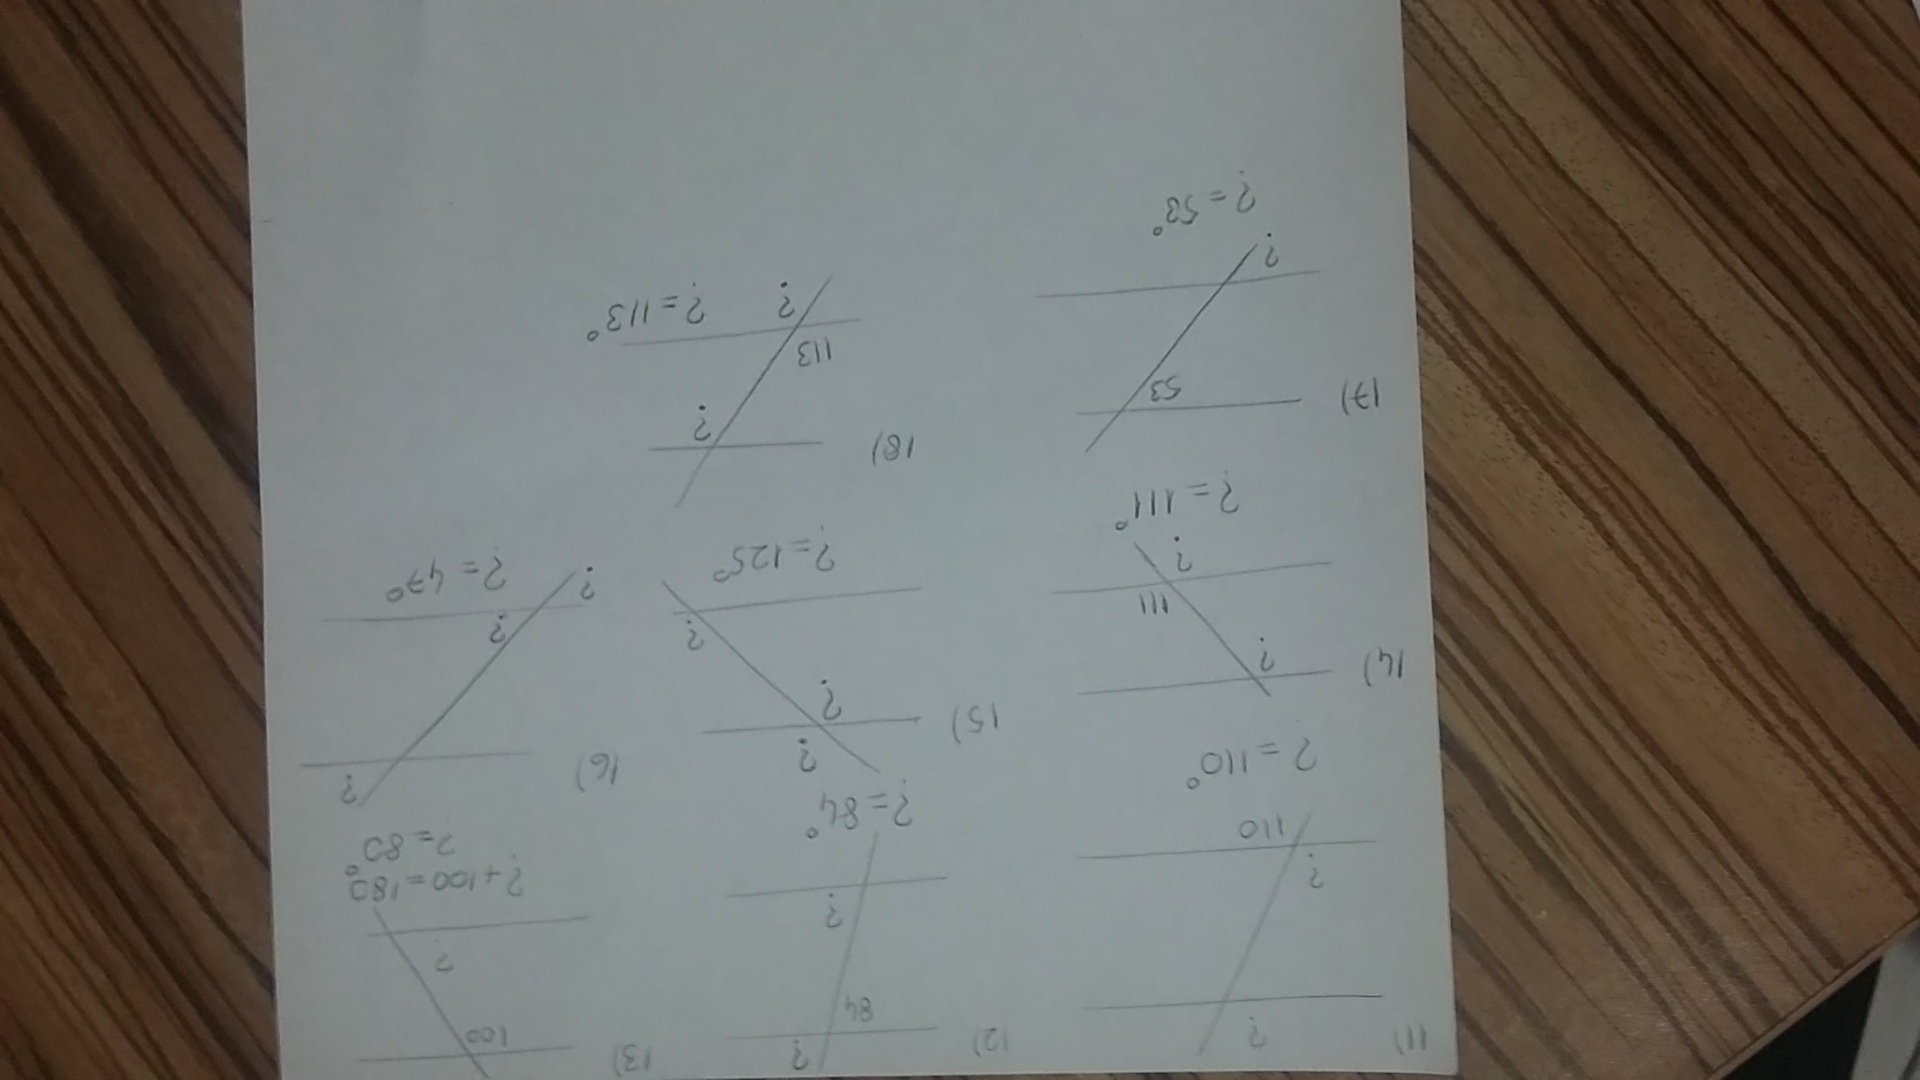 Find The Measure Of Each Angle Indicated